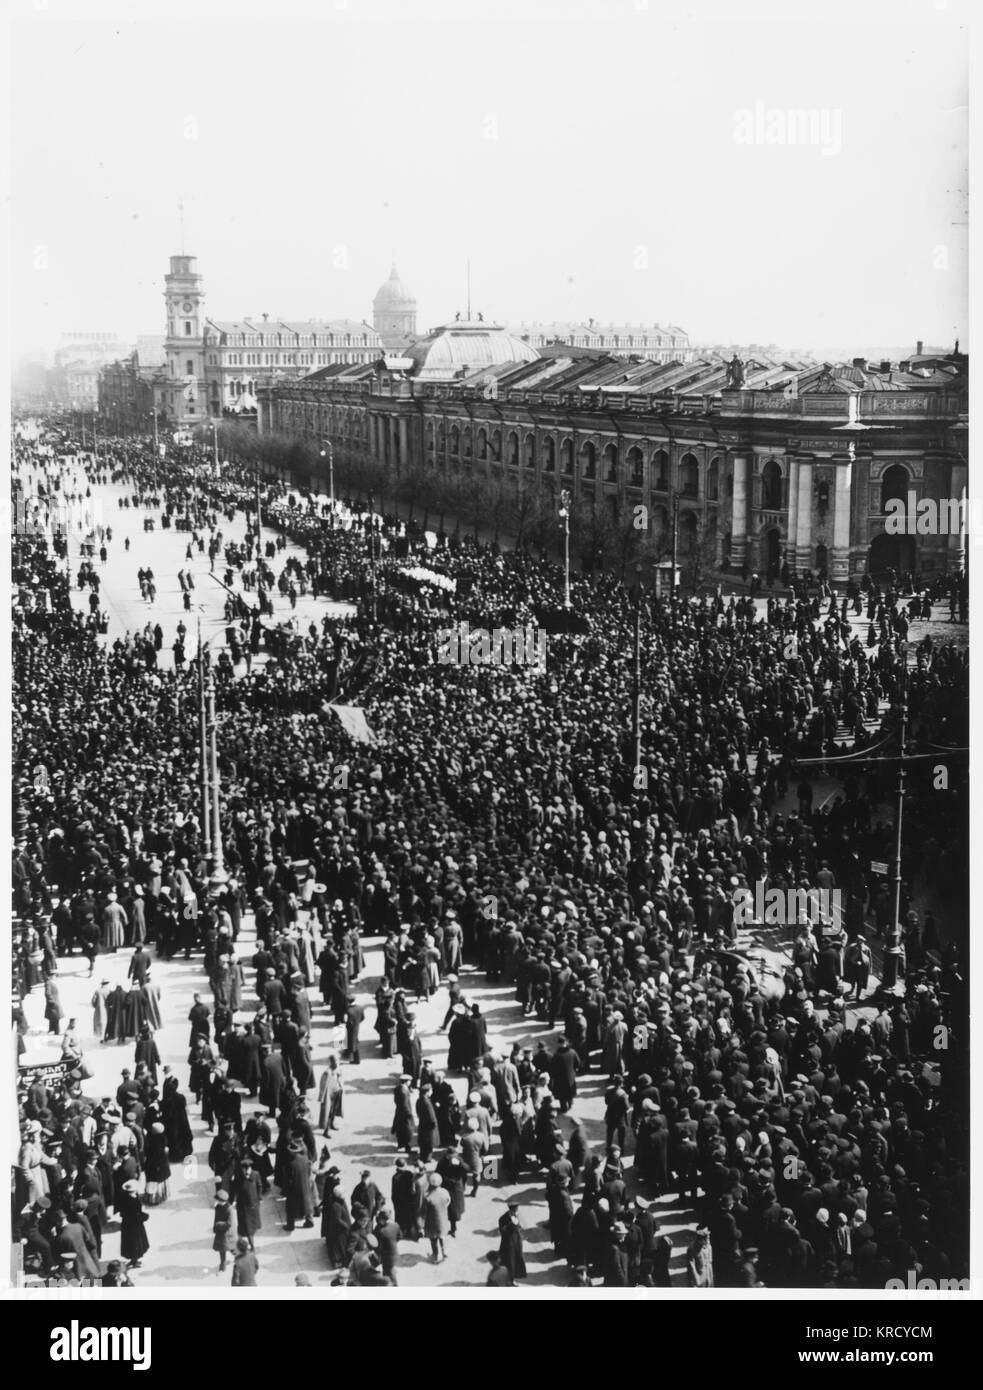 May Day demonstration on the  Nevski Prospekt, Petrograd.         Date: April 1917 - Stock Image